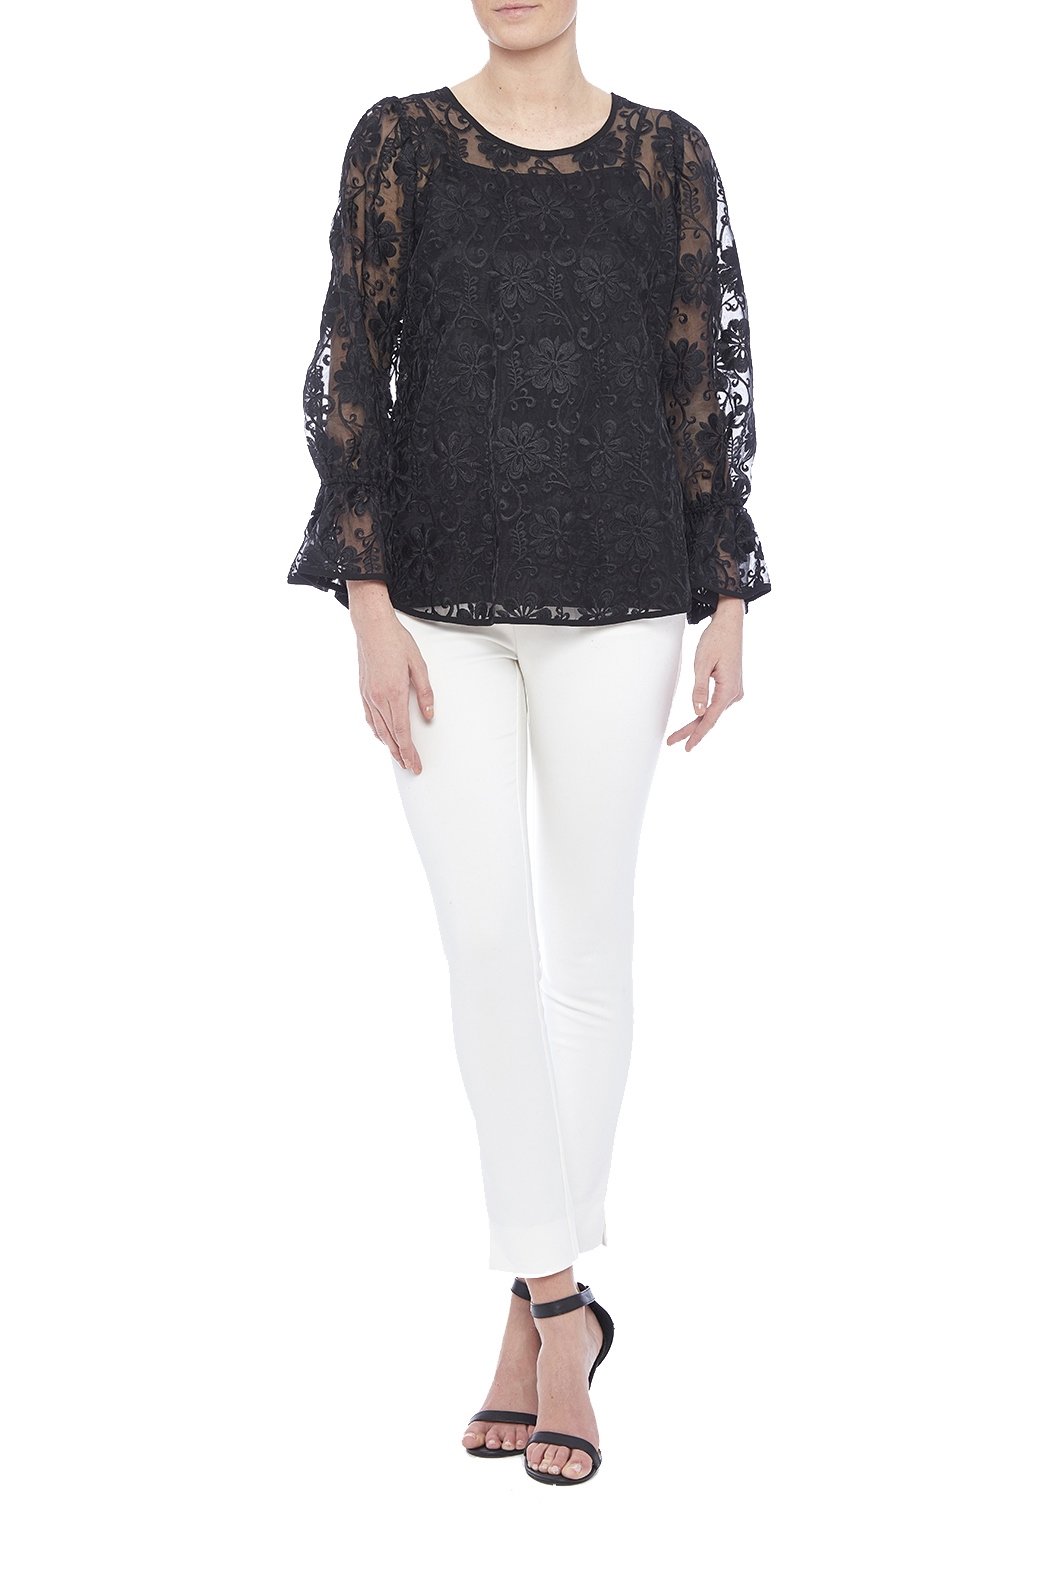 Voom Black Embroidered Top - Front Full Image